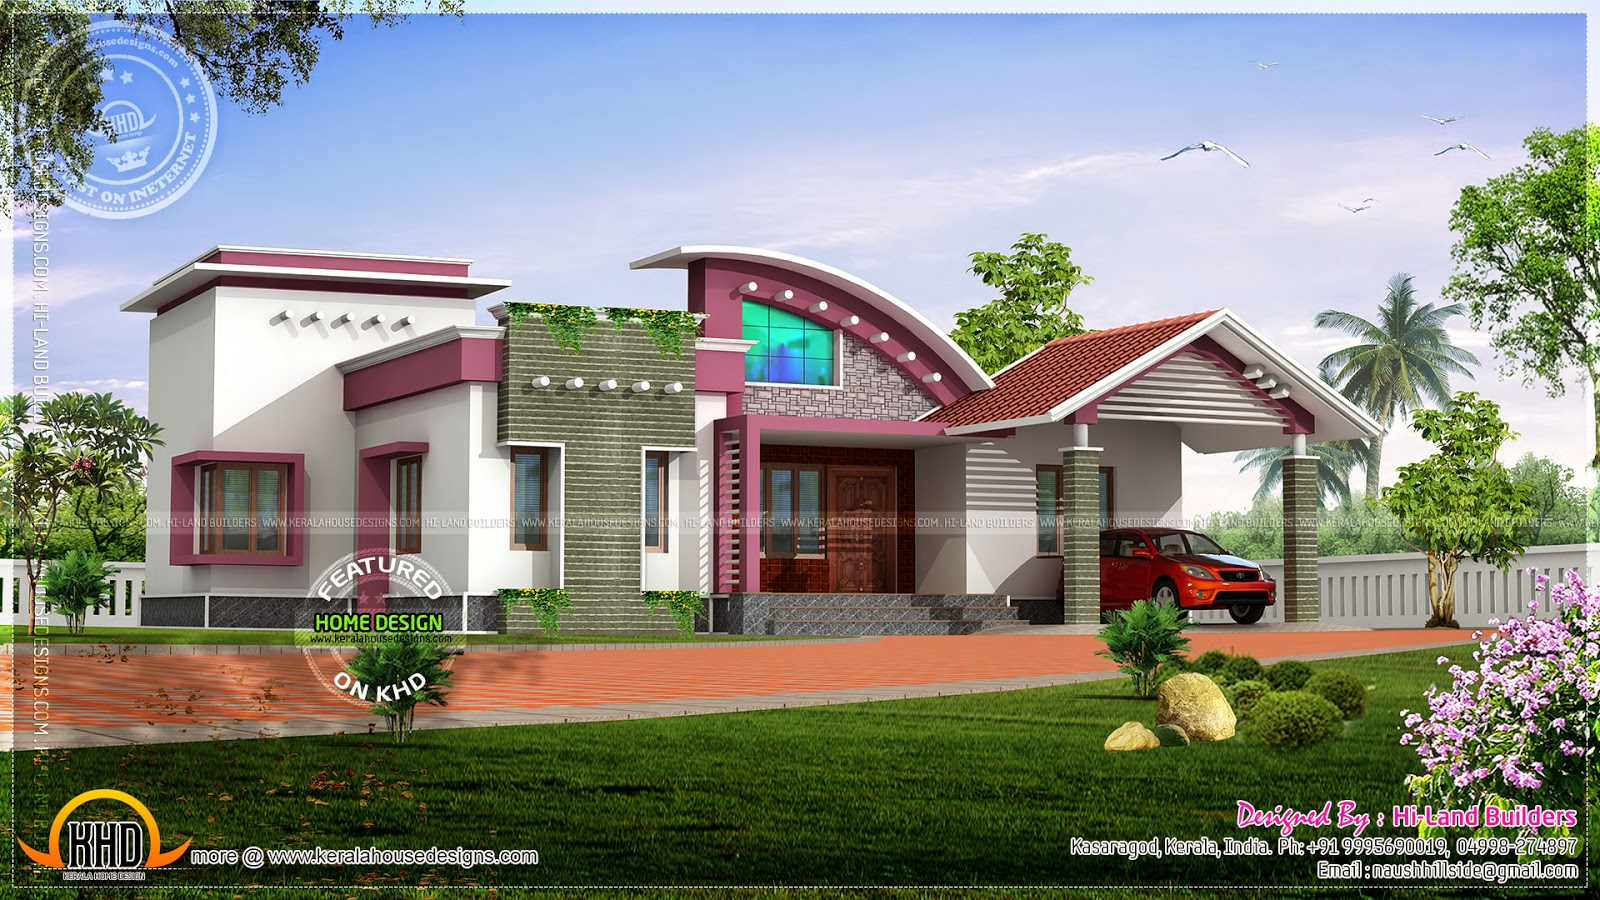 Modern nalukettu house pictures House and home design